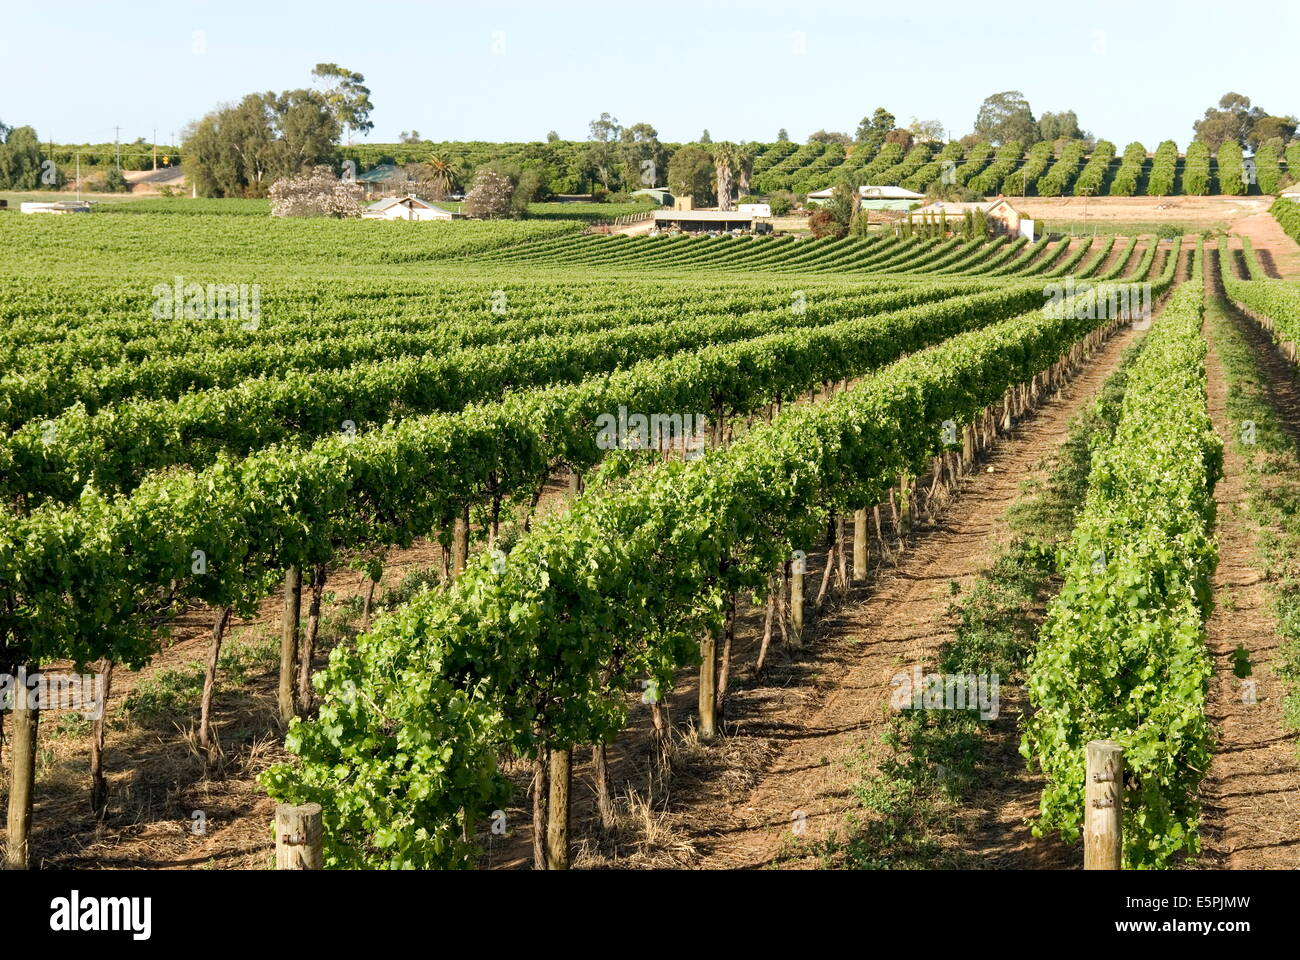 Giant vineyards, Renmark, Murray River valley, South Australia, Australia, Pacific - Stock Image